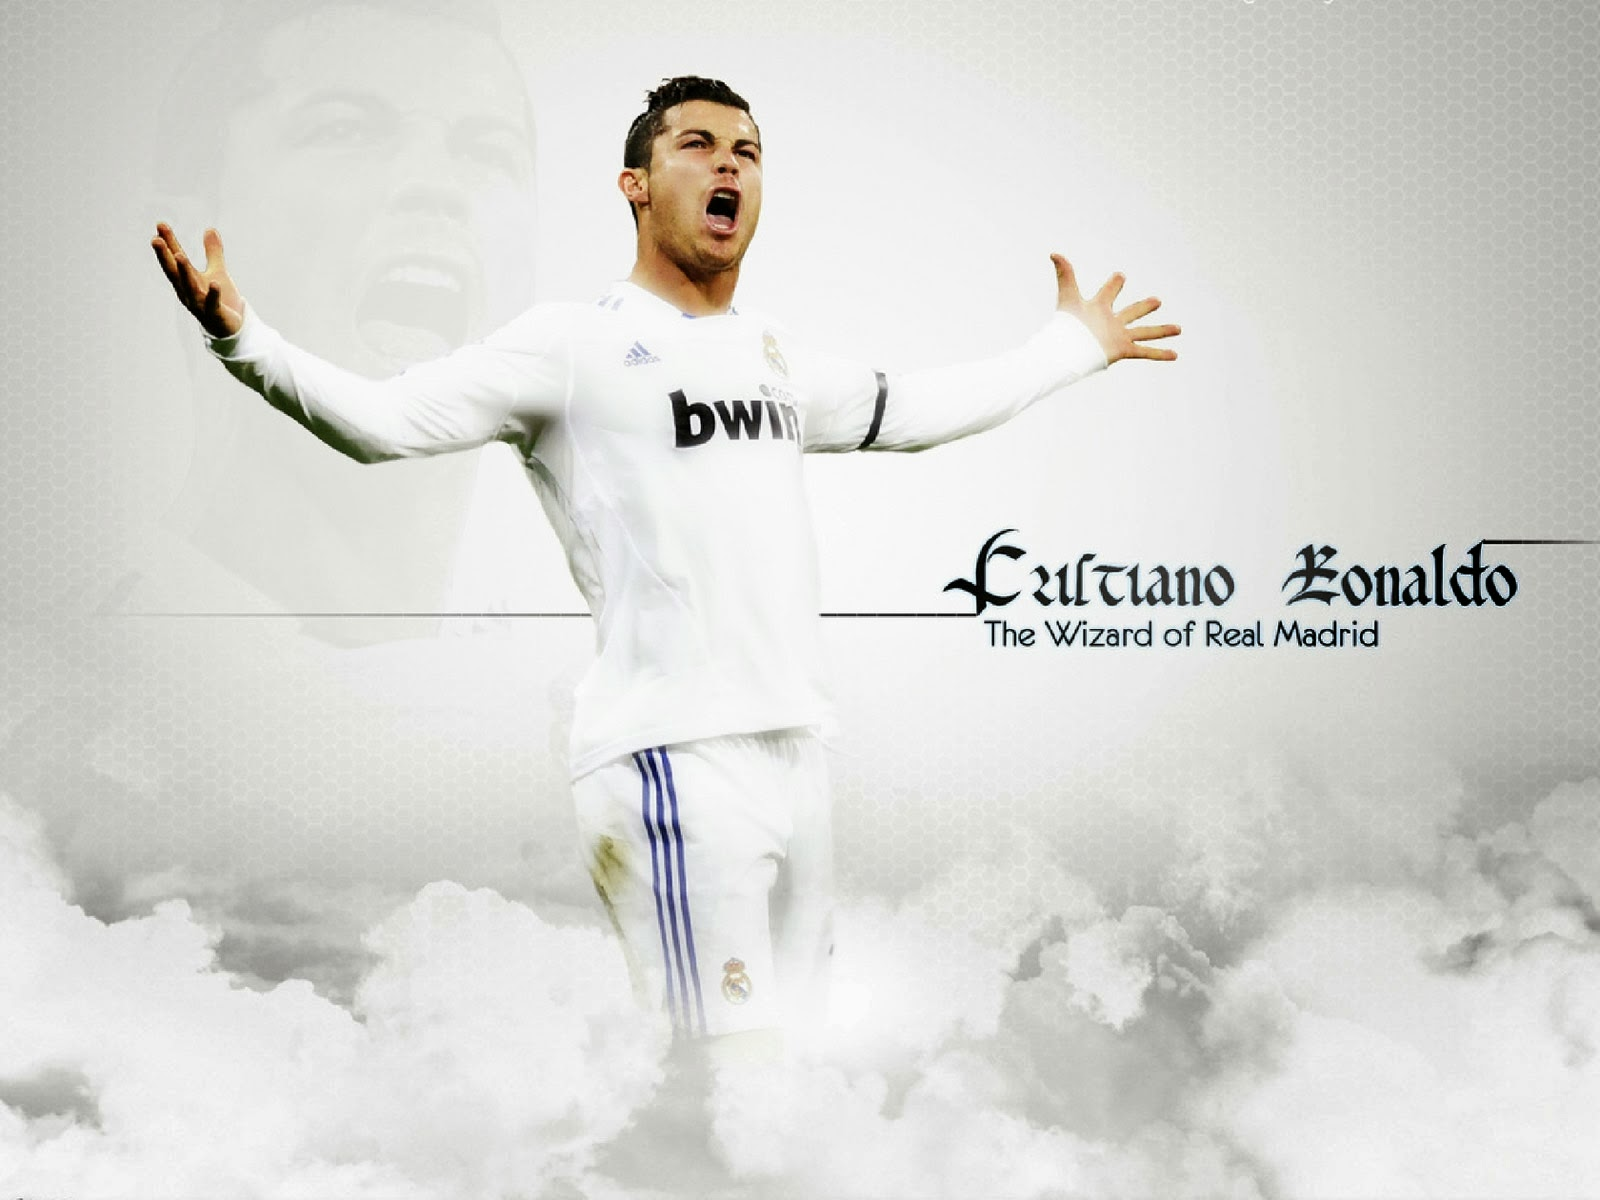 Cristiano Ronaldo New HD Wallpapers 2014 2015 Football Wallpapers HD 1600x1200